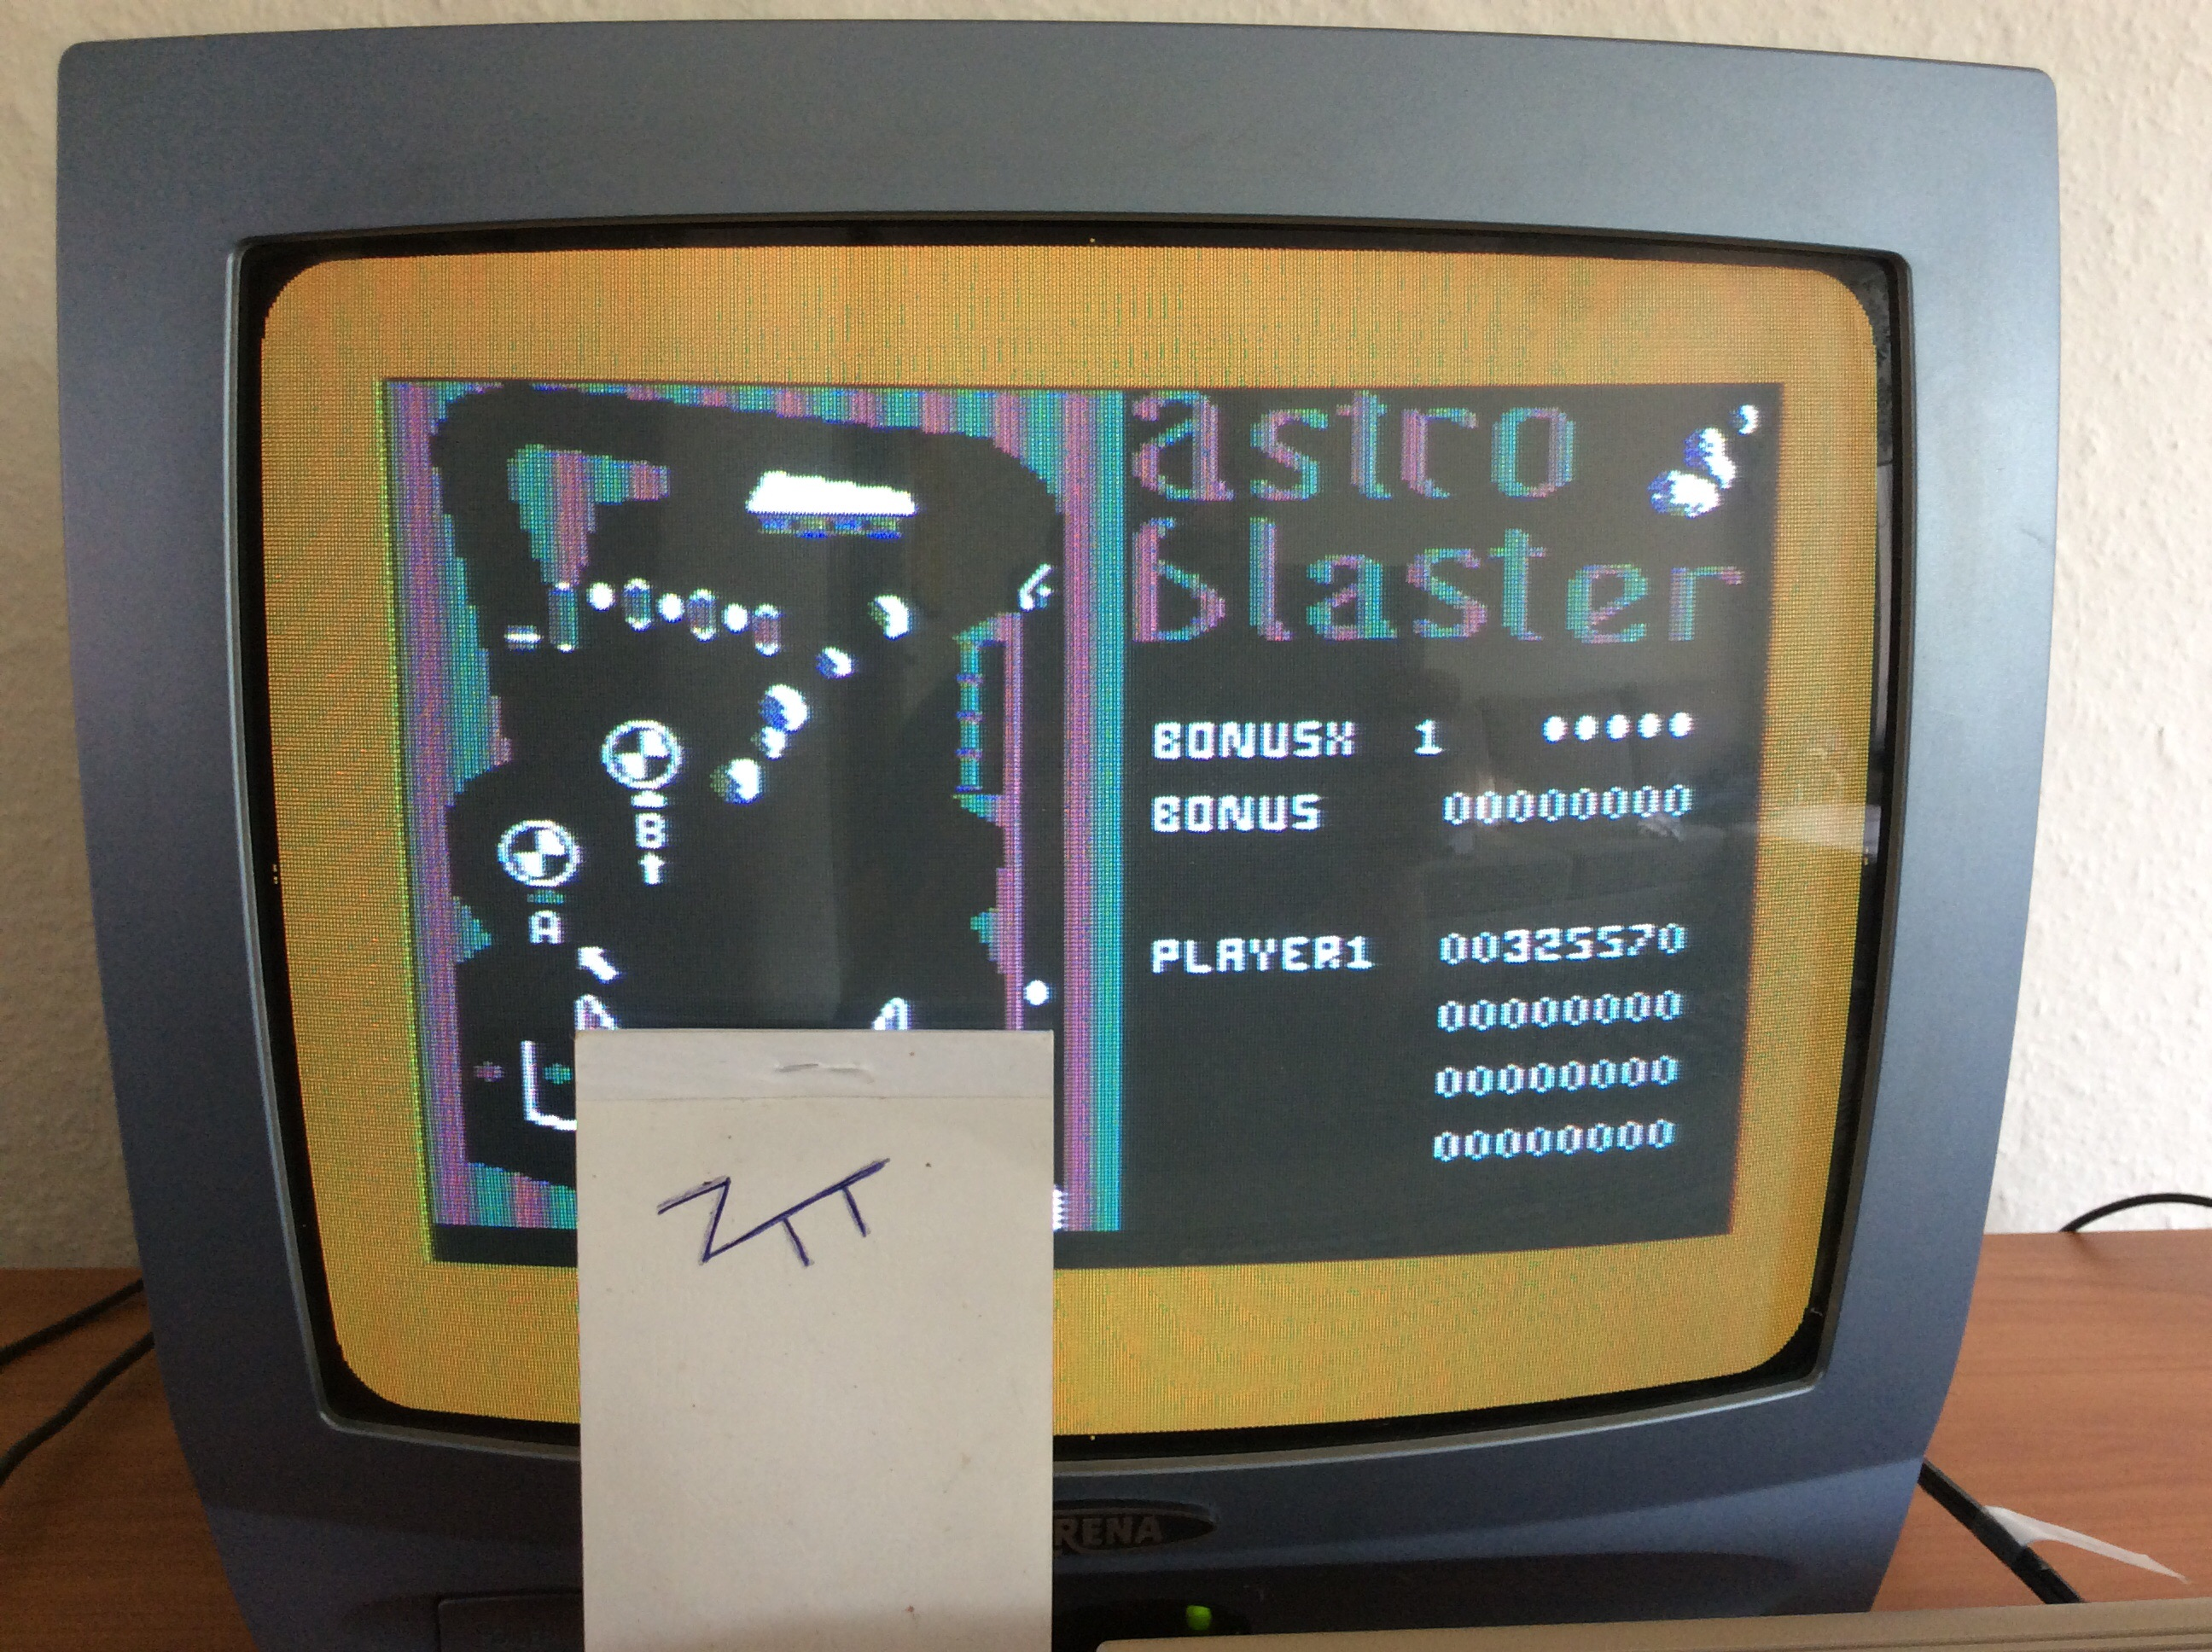 Frankie: Astro Blaster [Pinball] (Commodore 64) 325,570 points on 2016-05-29 04:18:52